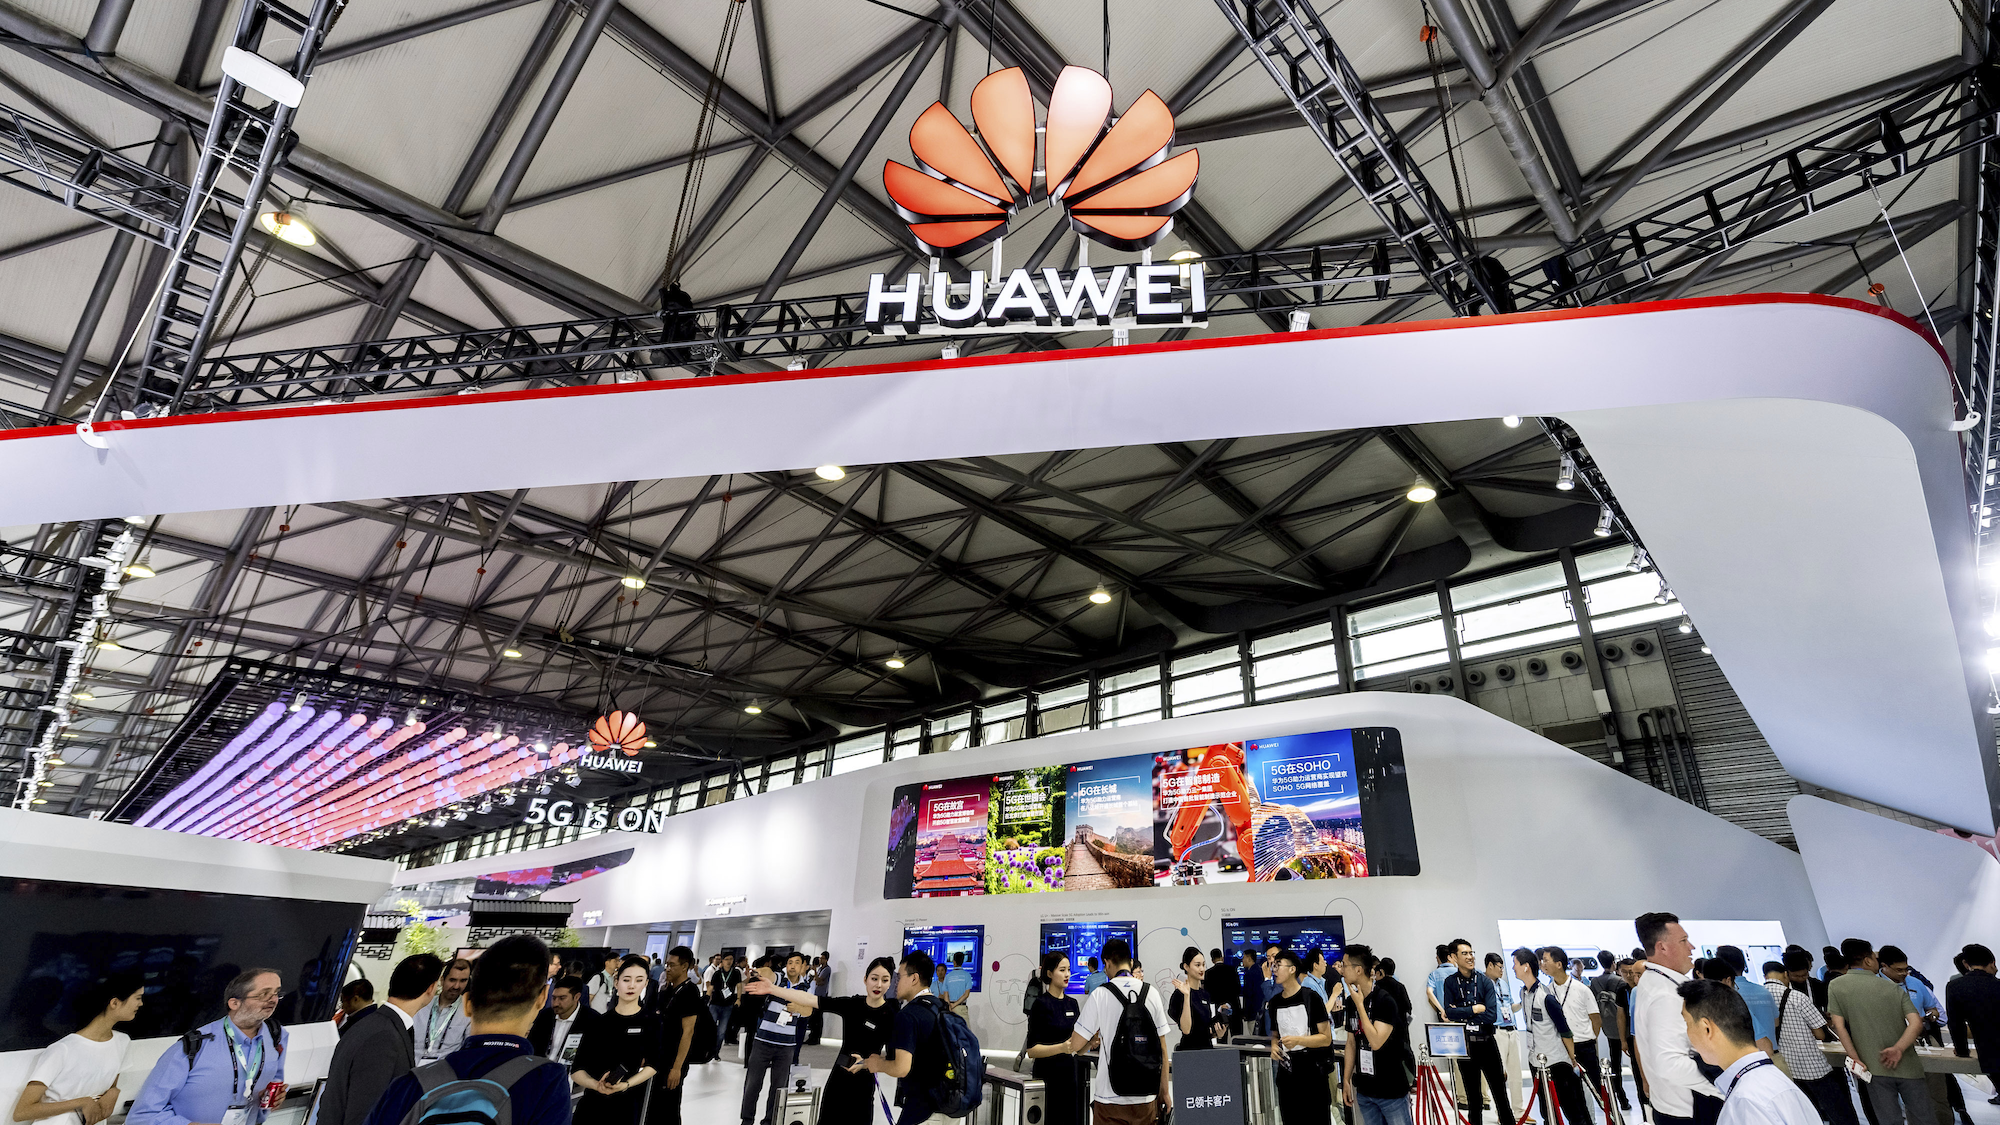 Huawei is giving 0 million a year to universities with no strings attached